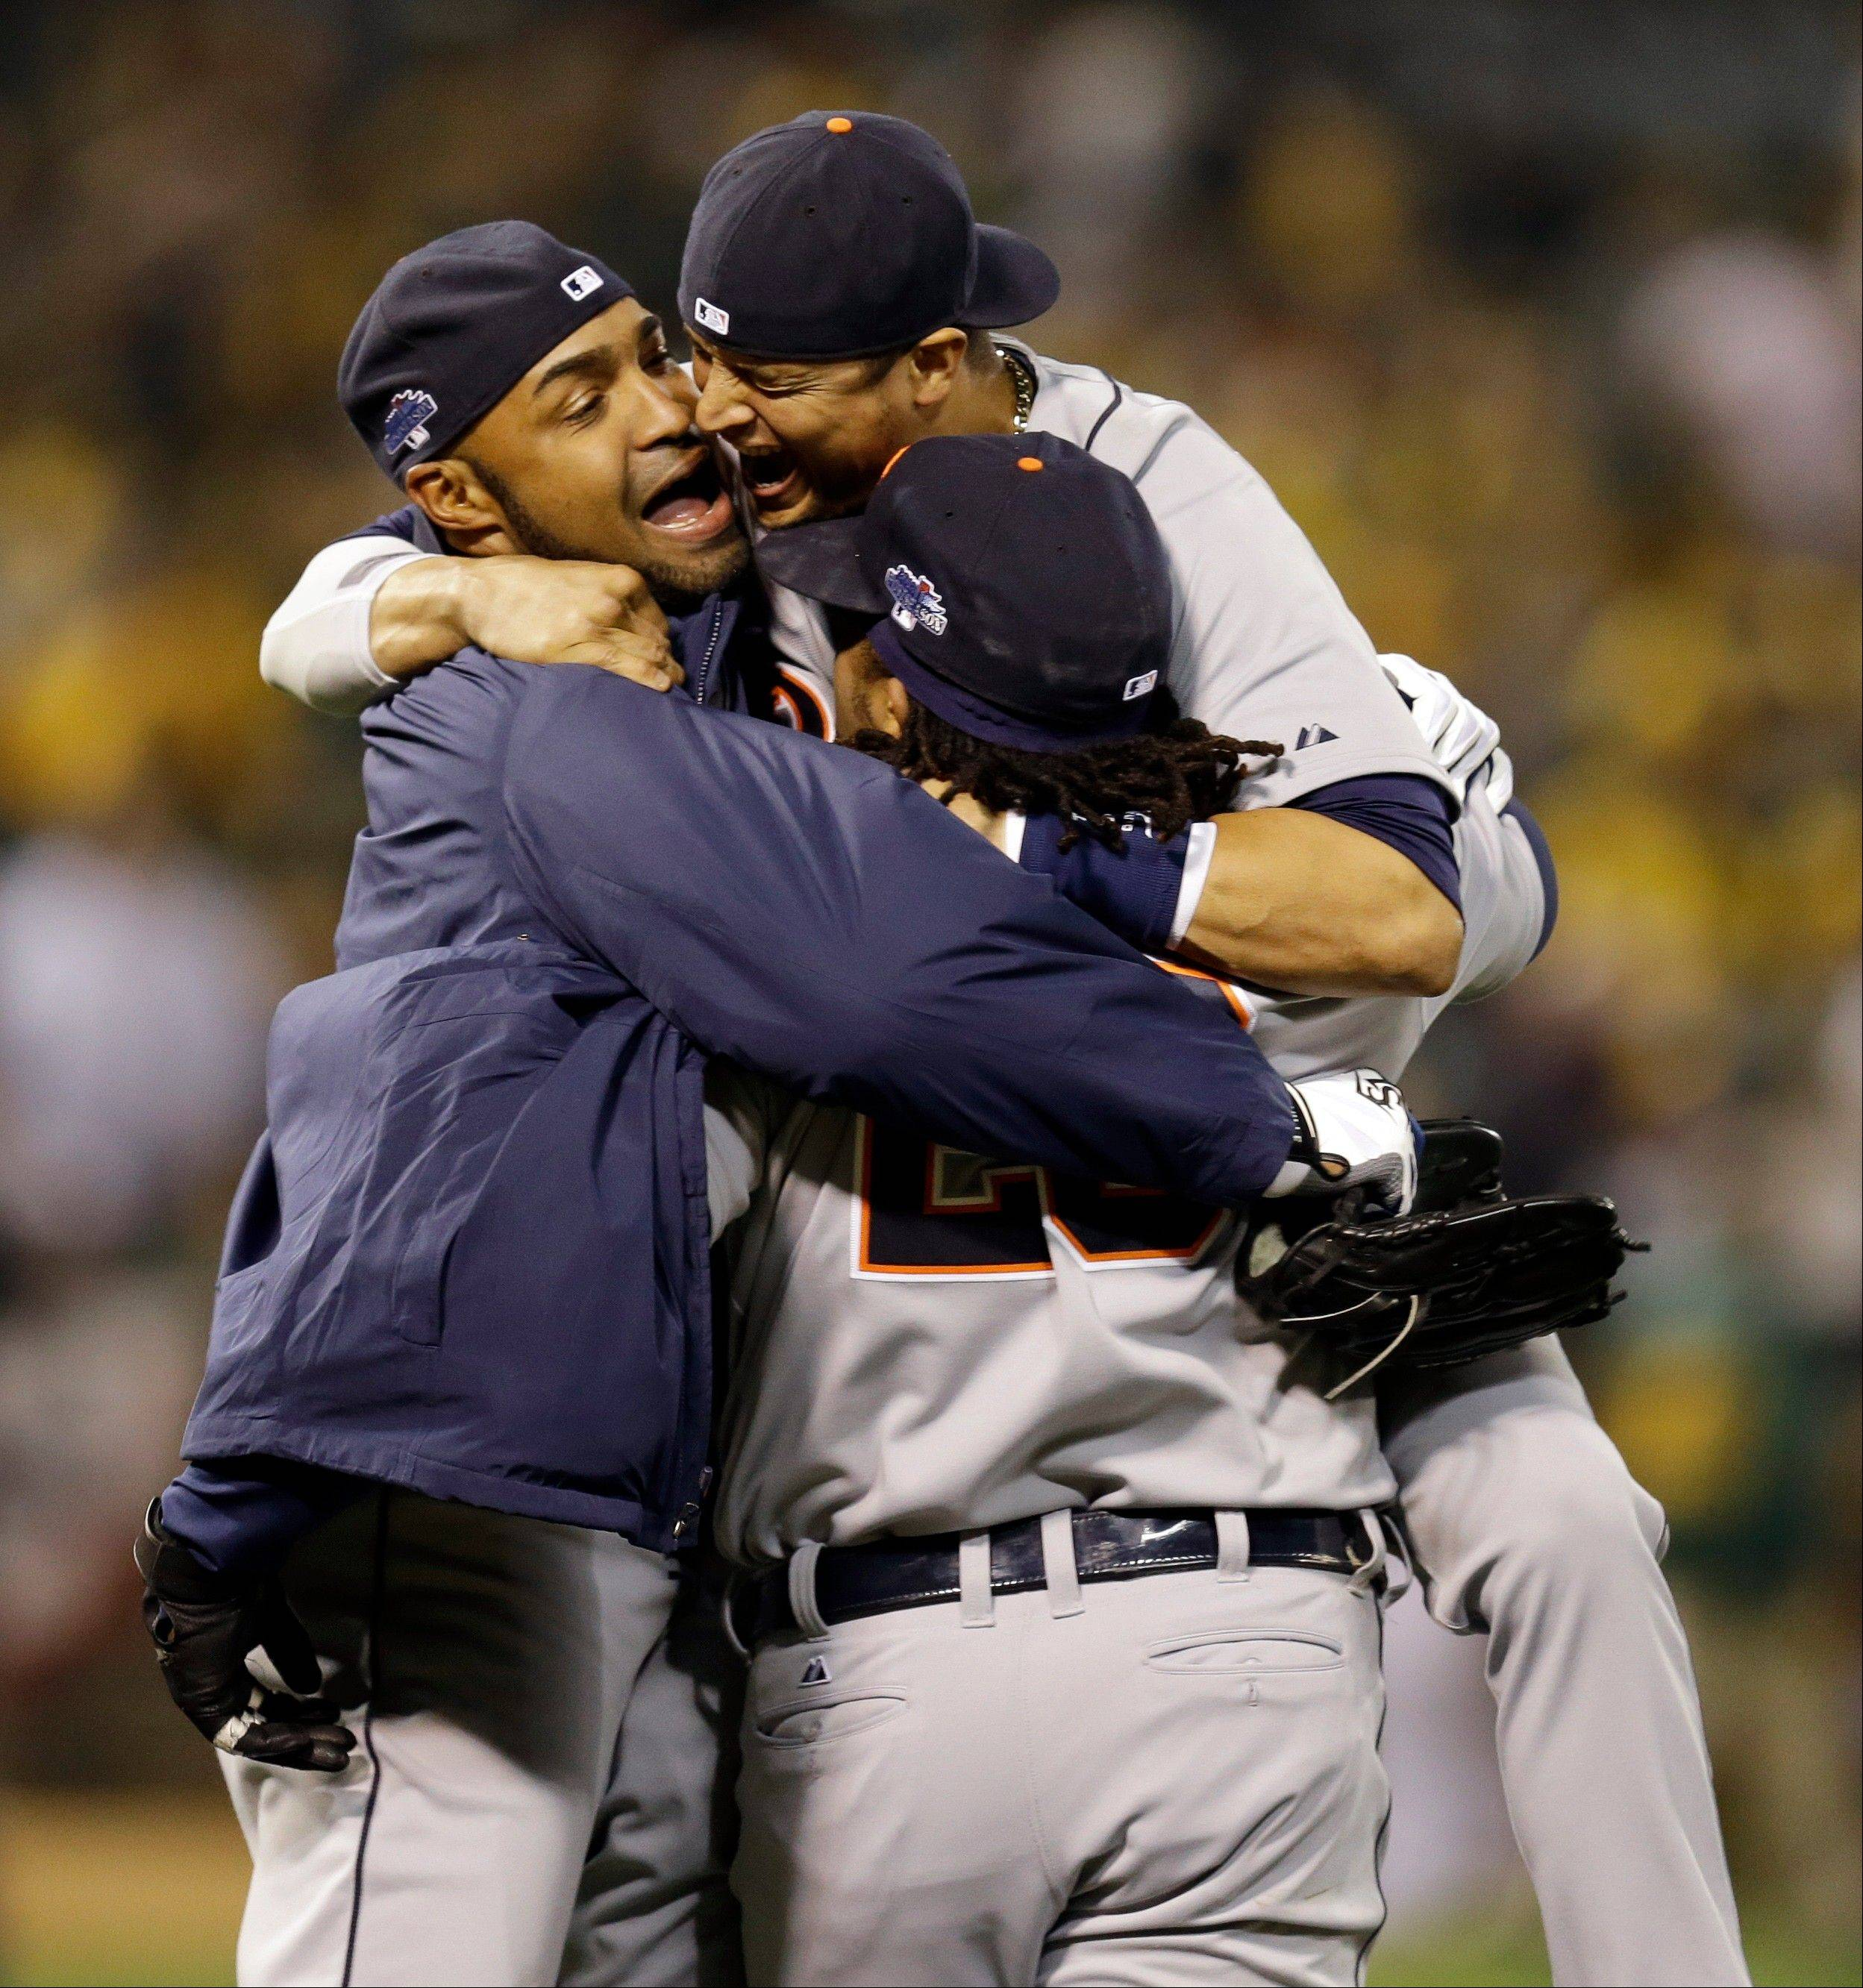 The Detroit Tigers celebrate after beating the Oakland Athletics 3-0 Thursday to win Game 5 of an American League Division Series in Oakland, Calif.